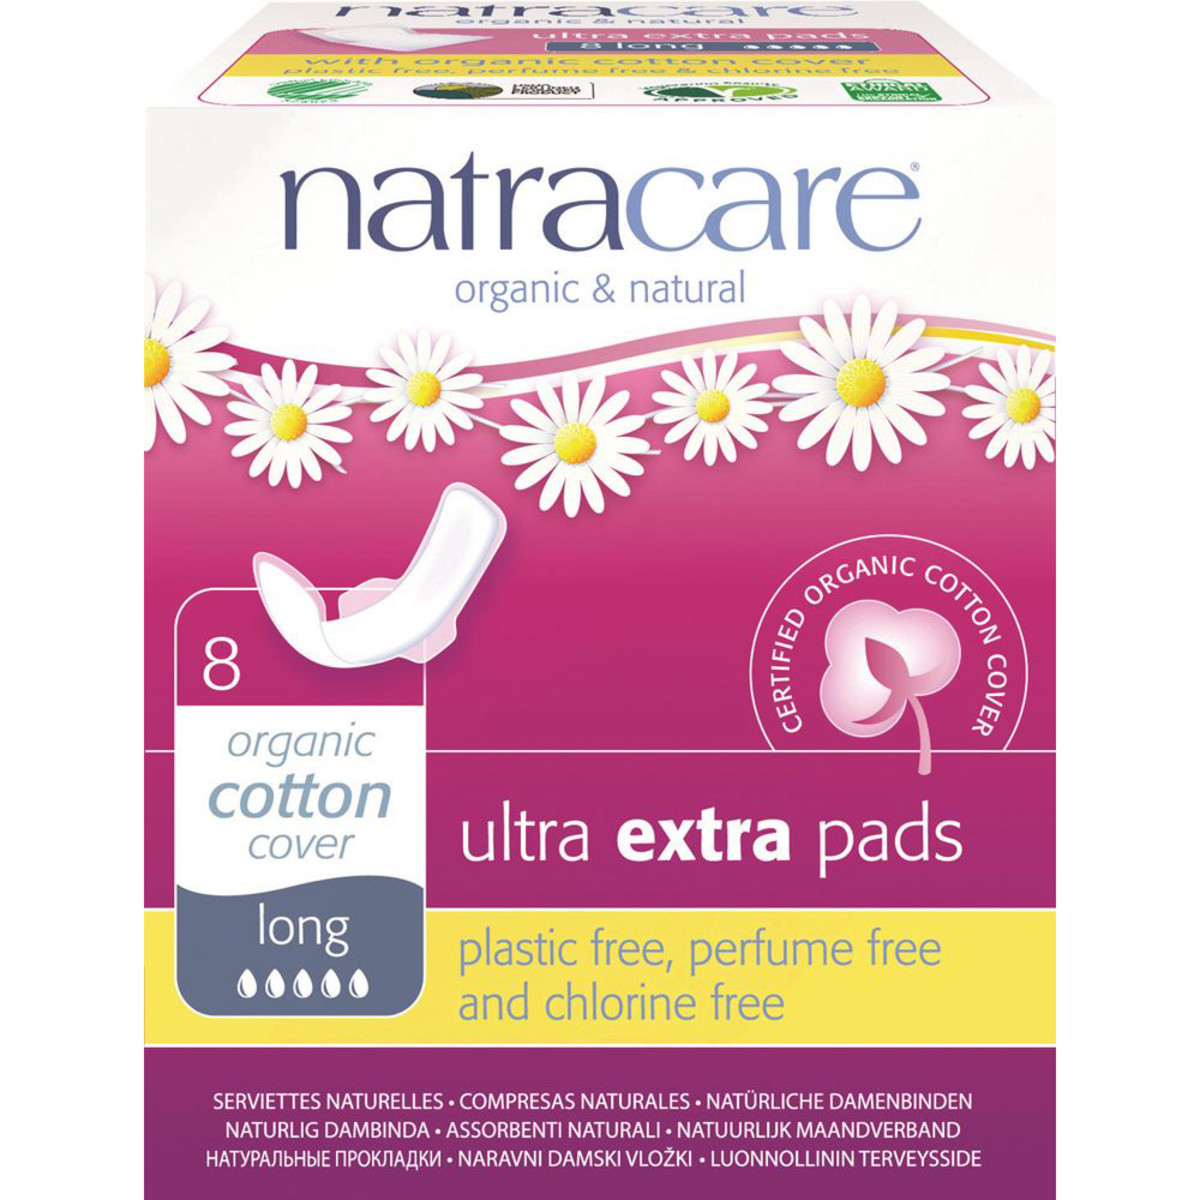 NATRACARE ULTRA EXTRA PADS LONG ORGANIC COTTON COVER 8 PACK